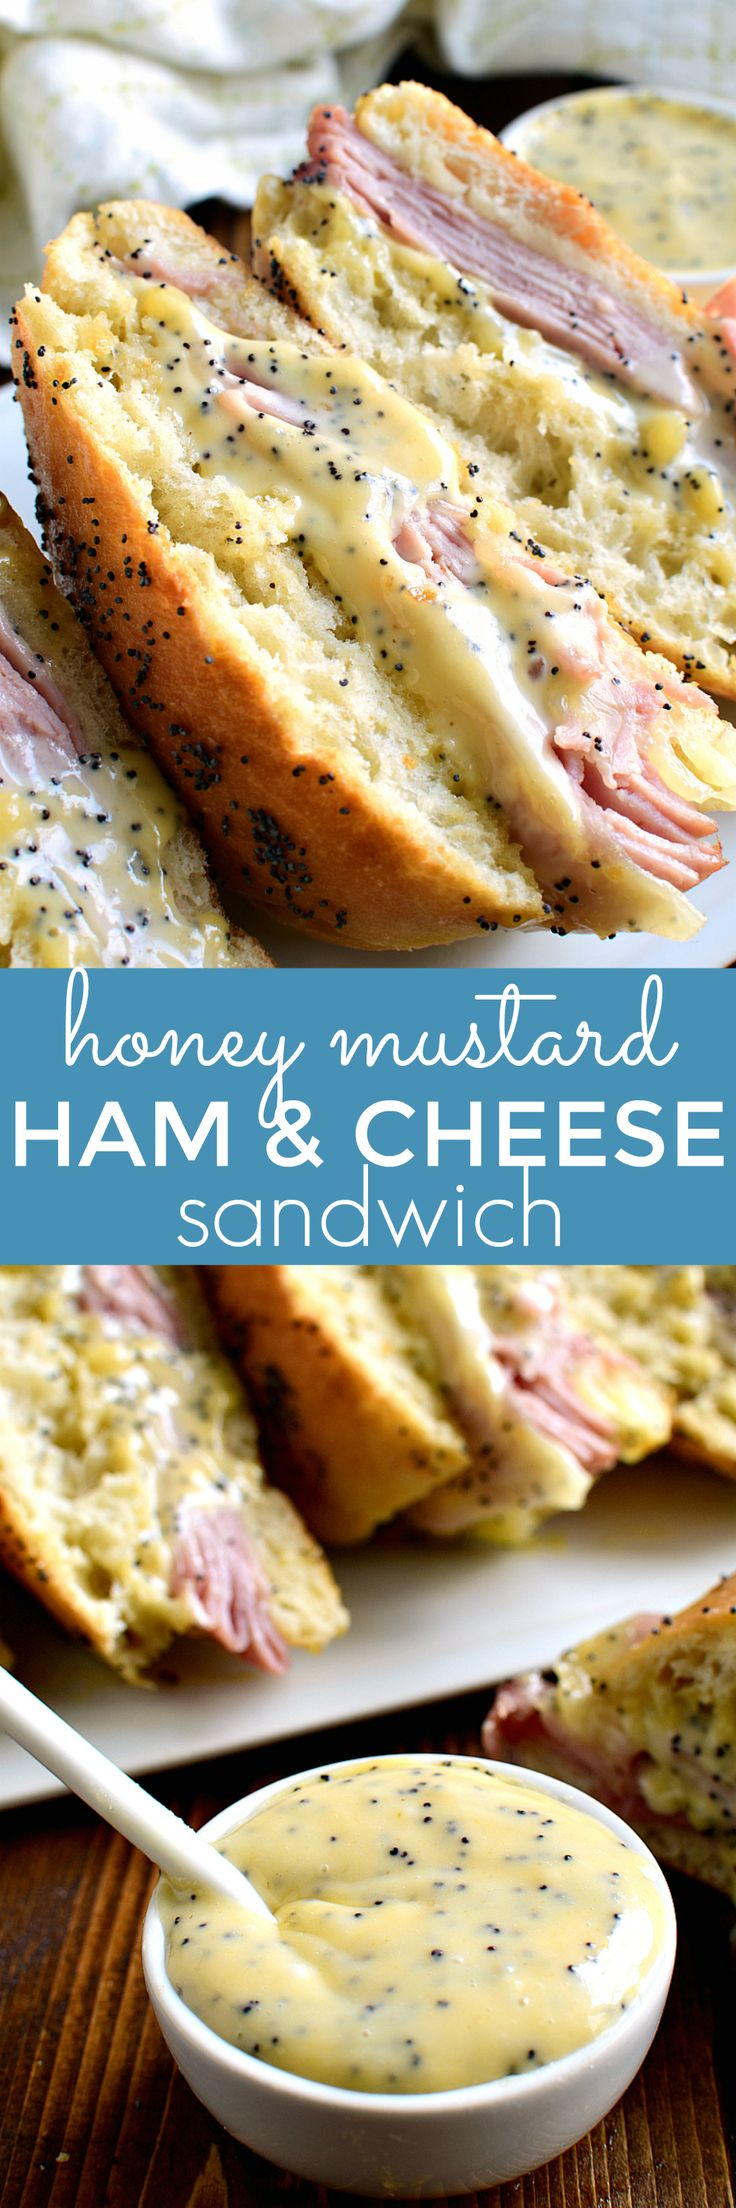 If you love honey mustard, this Honey Mustard Ham & Cheese Sandwich is for you! Perfect for lunch or dinner....a delicious twist on a classic!